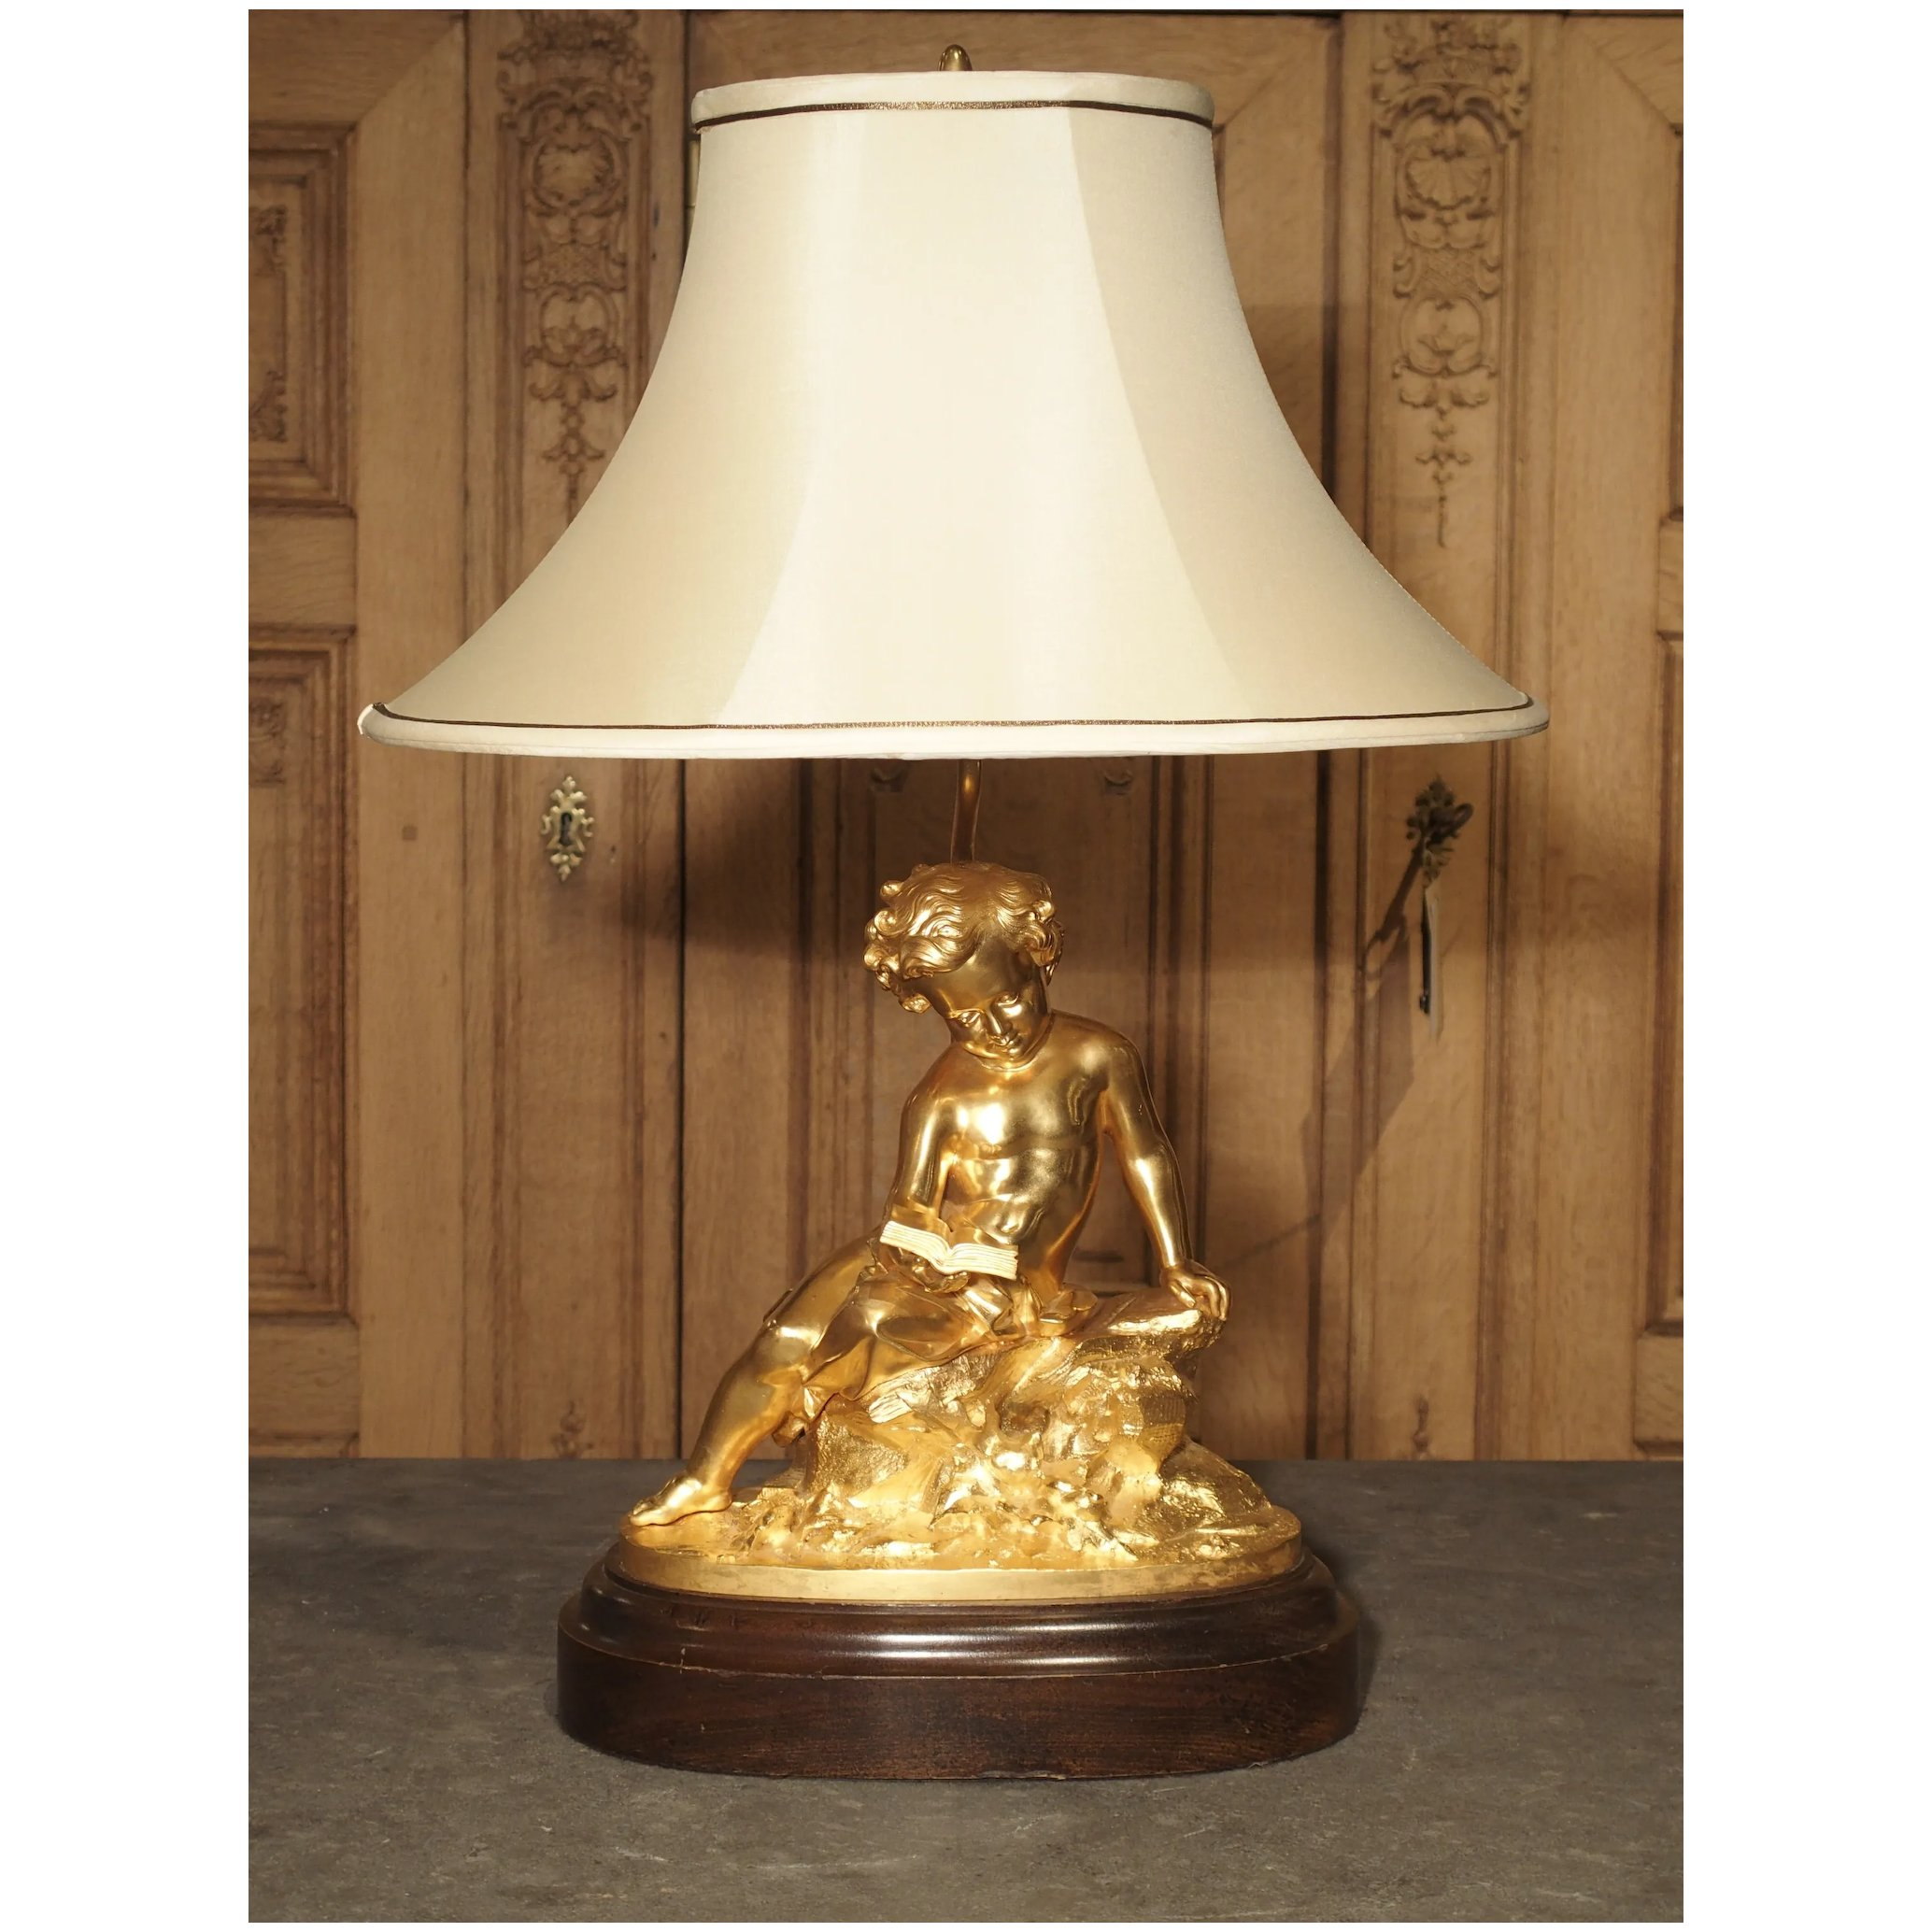 Picture of: Antique French Gilt Bronze Cherub Lamp On Wooden Base Le Louvre French Antiques Ruby Lane